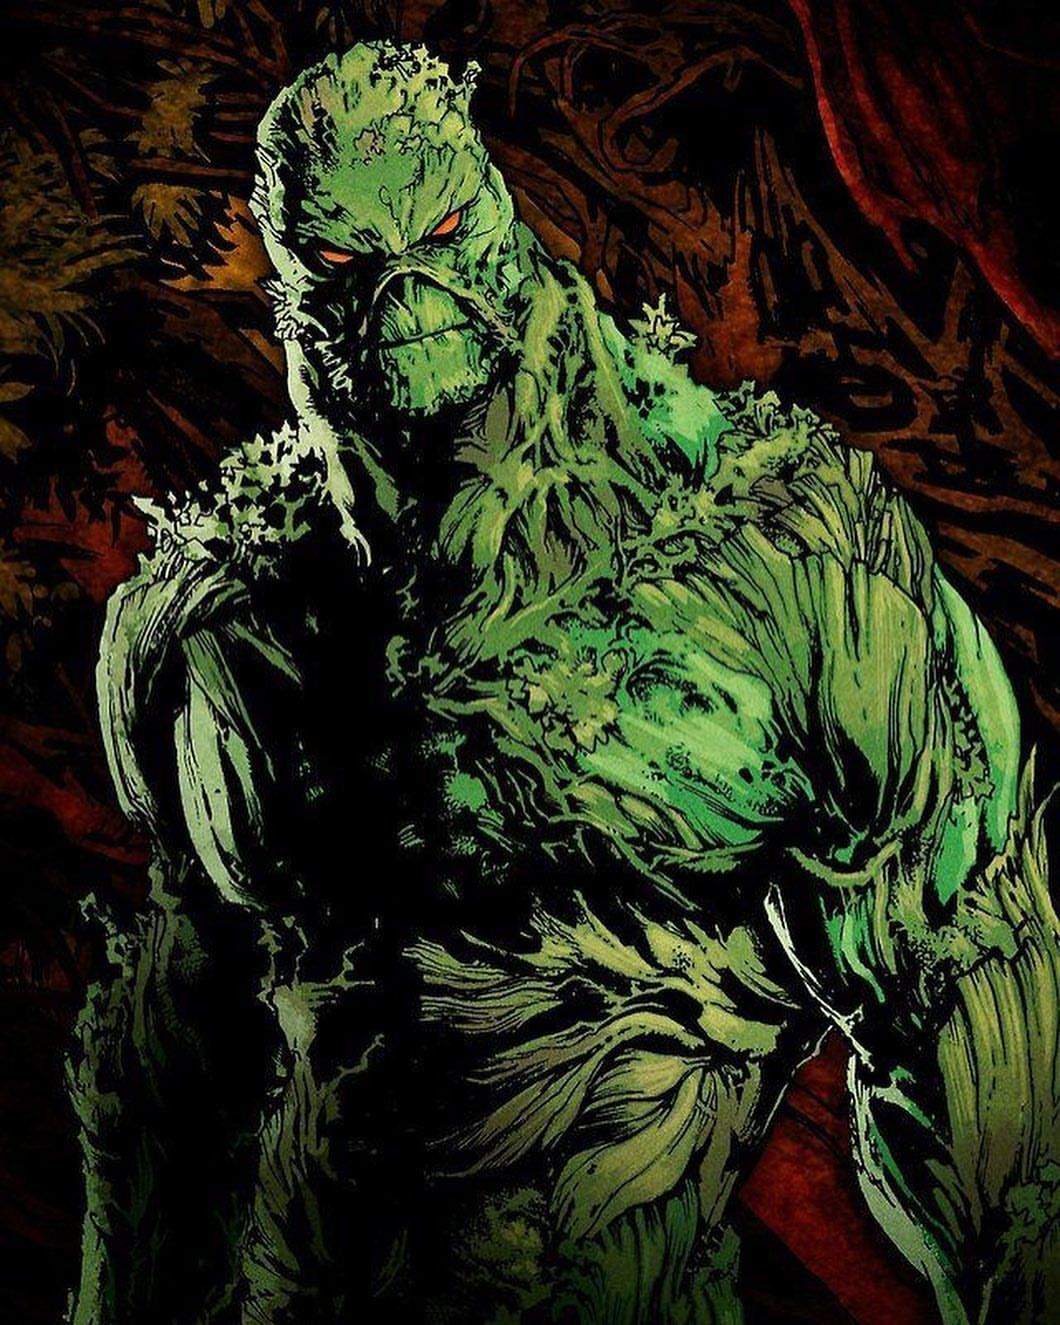 COOL SWAMP THING ART Did you watch? / #swampthing #dcuniverse #comics  #comicart #comicartist #art #cosplay #… | Superhero comic, Justice league  dark, Dc comics art